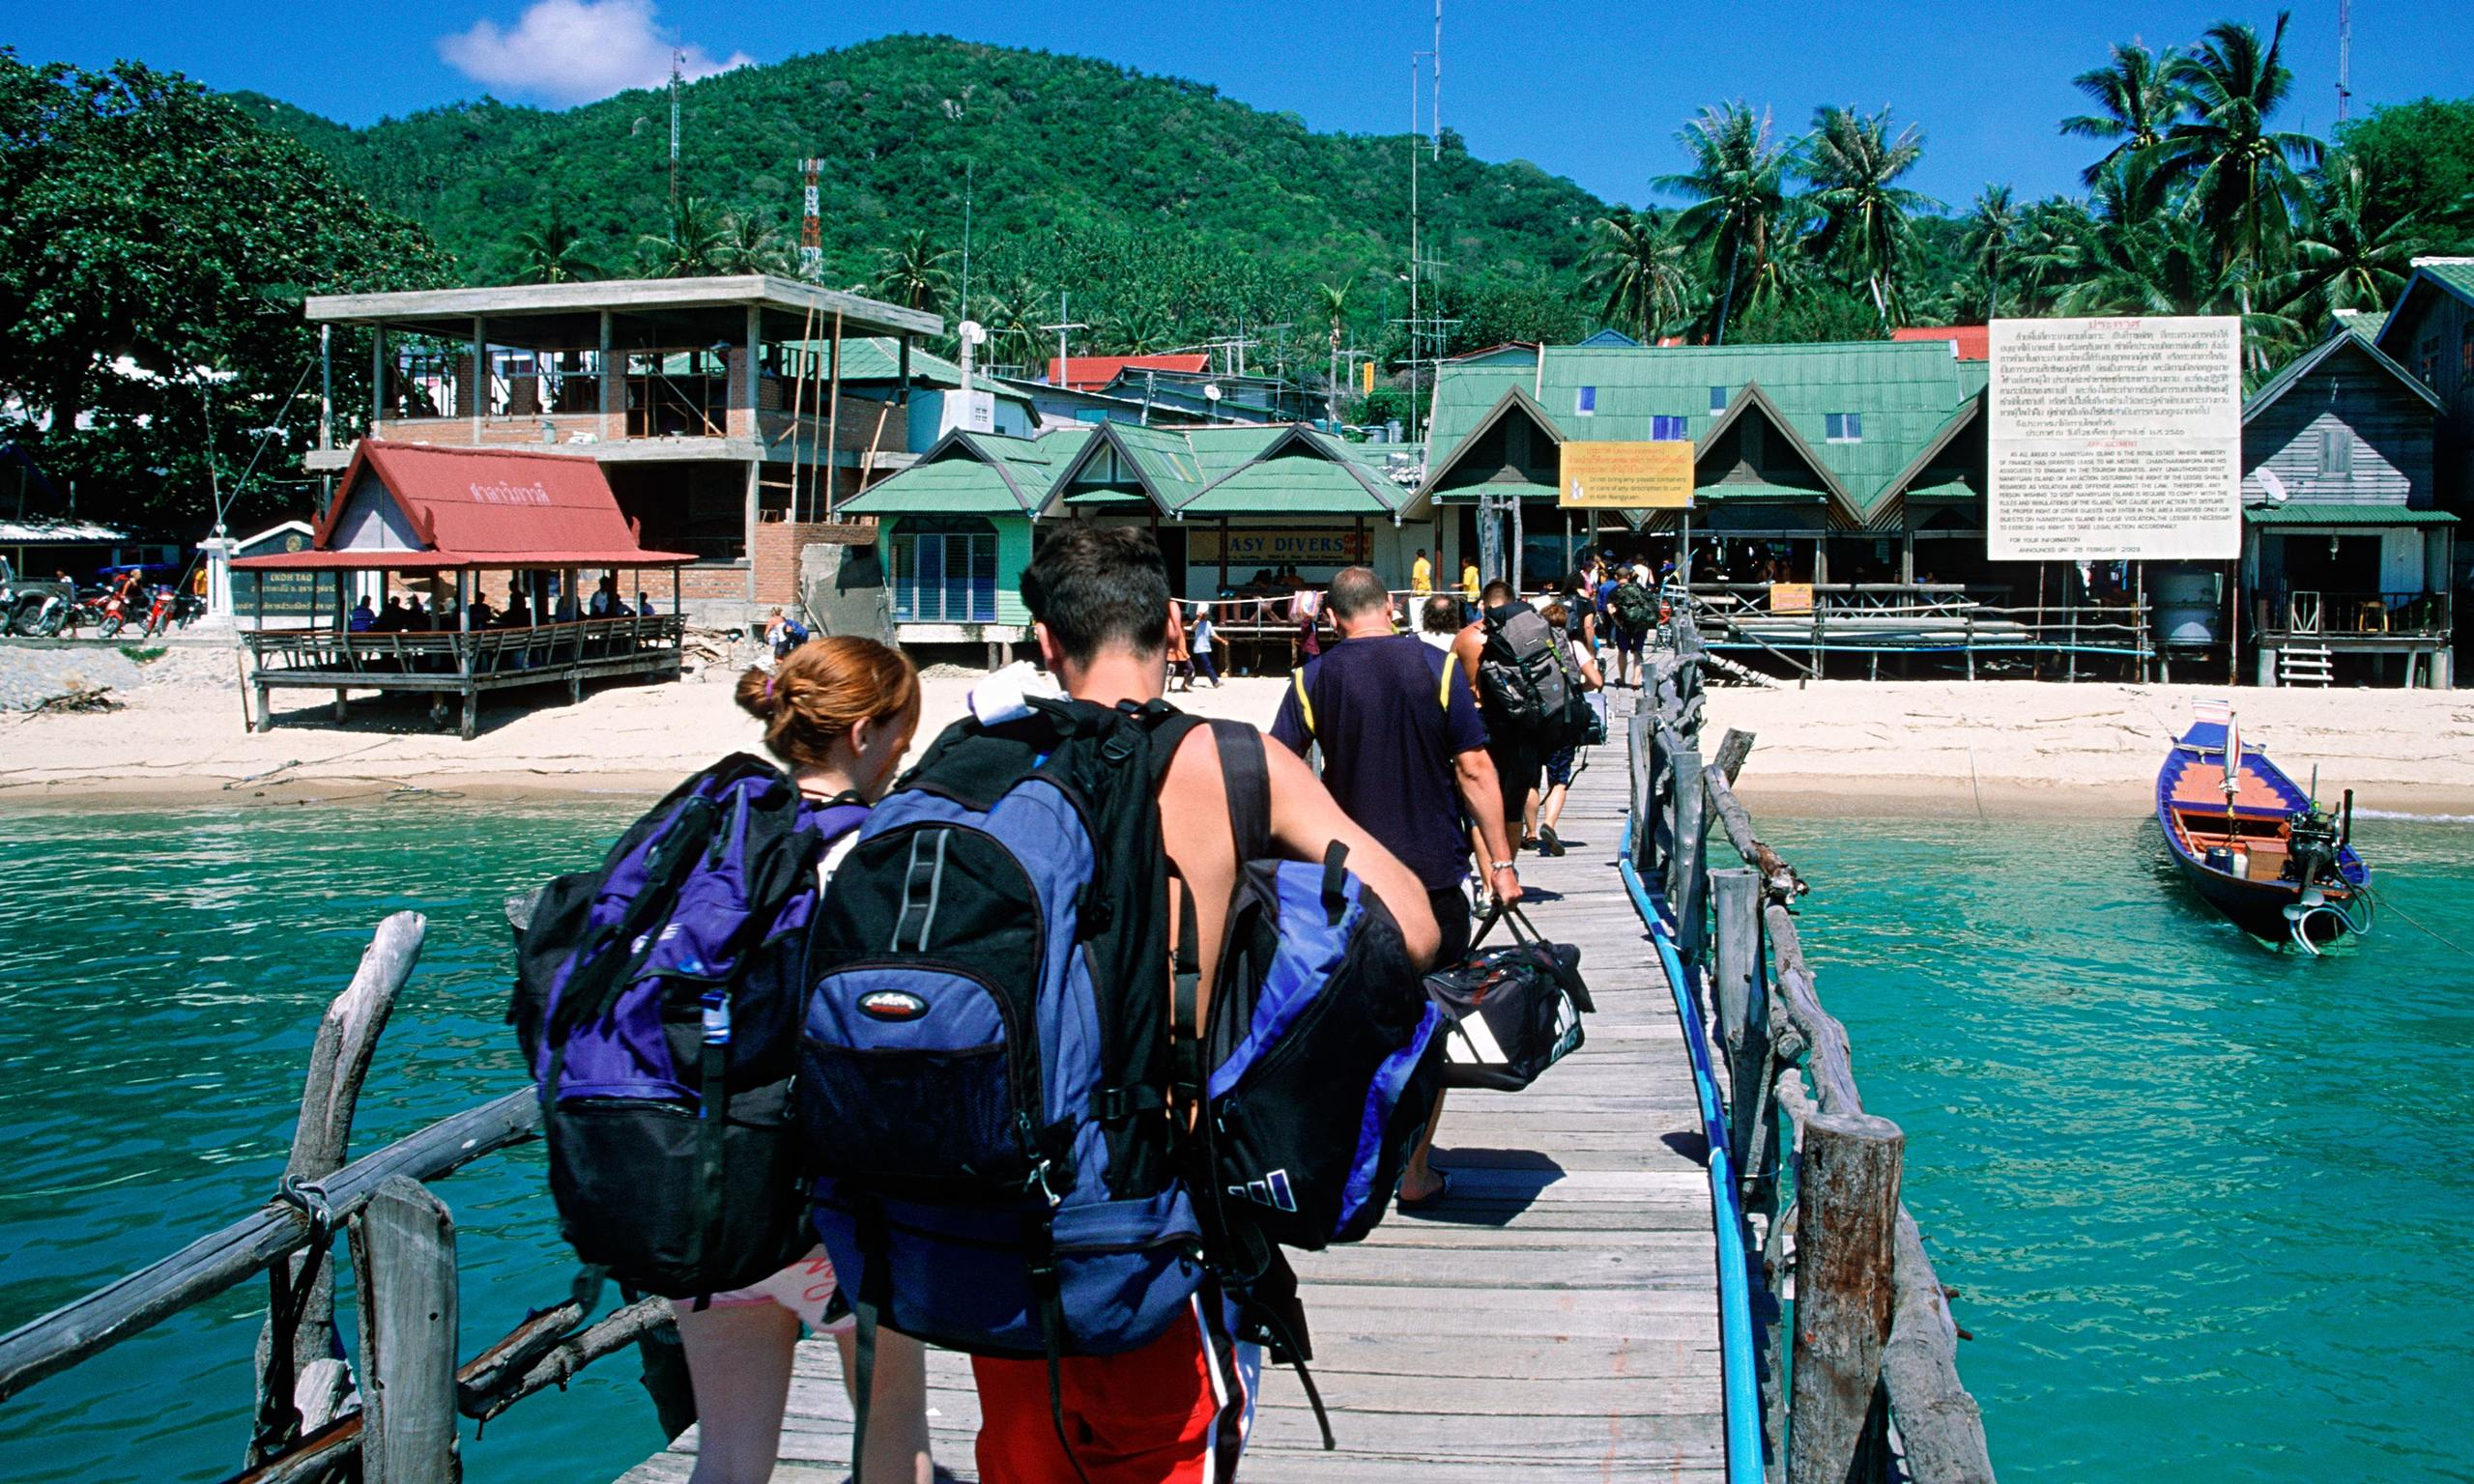 Dark side of Koh Tao: The seven tourists found dead on